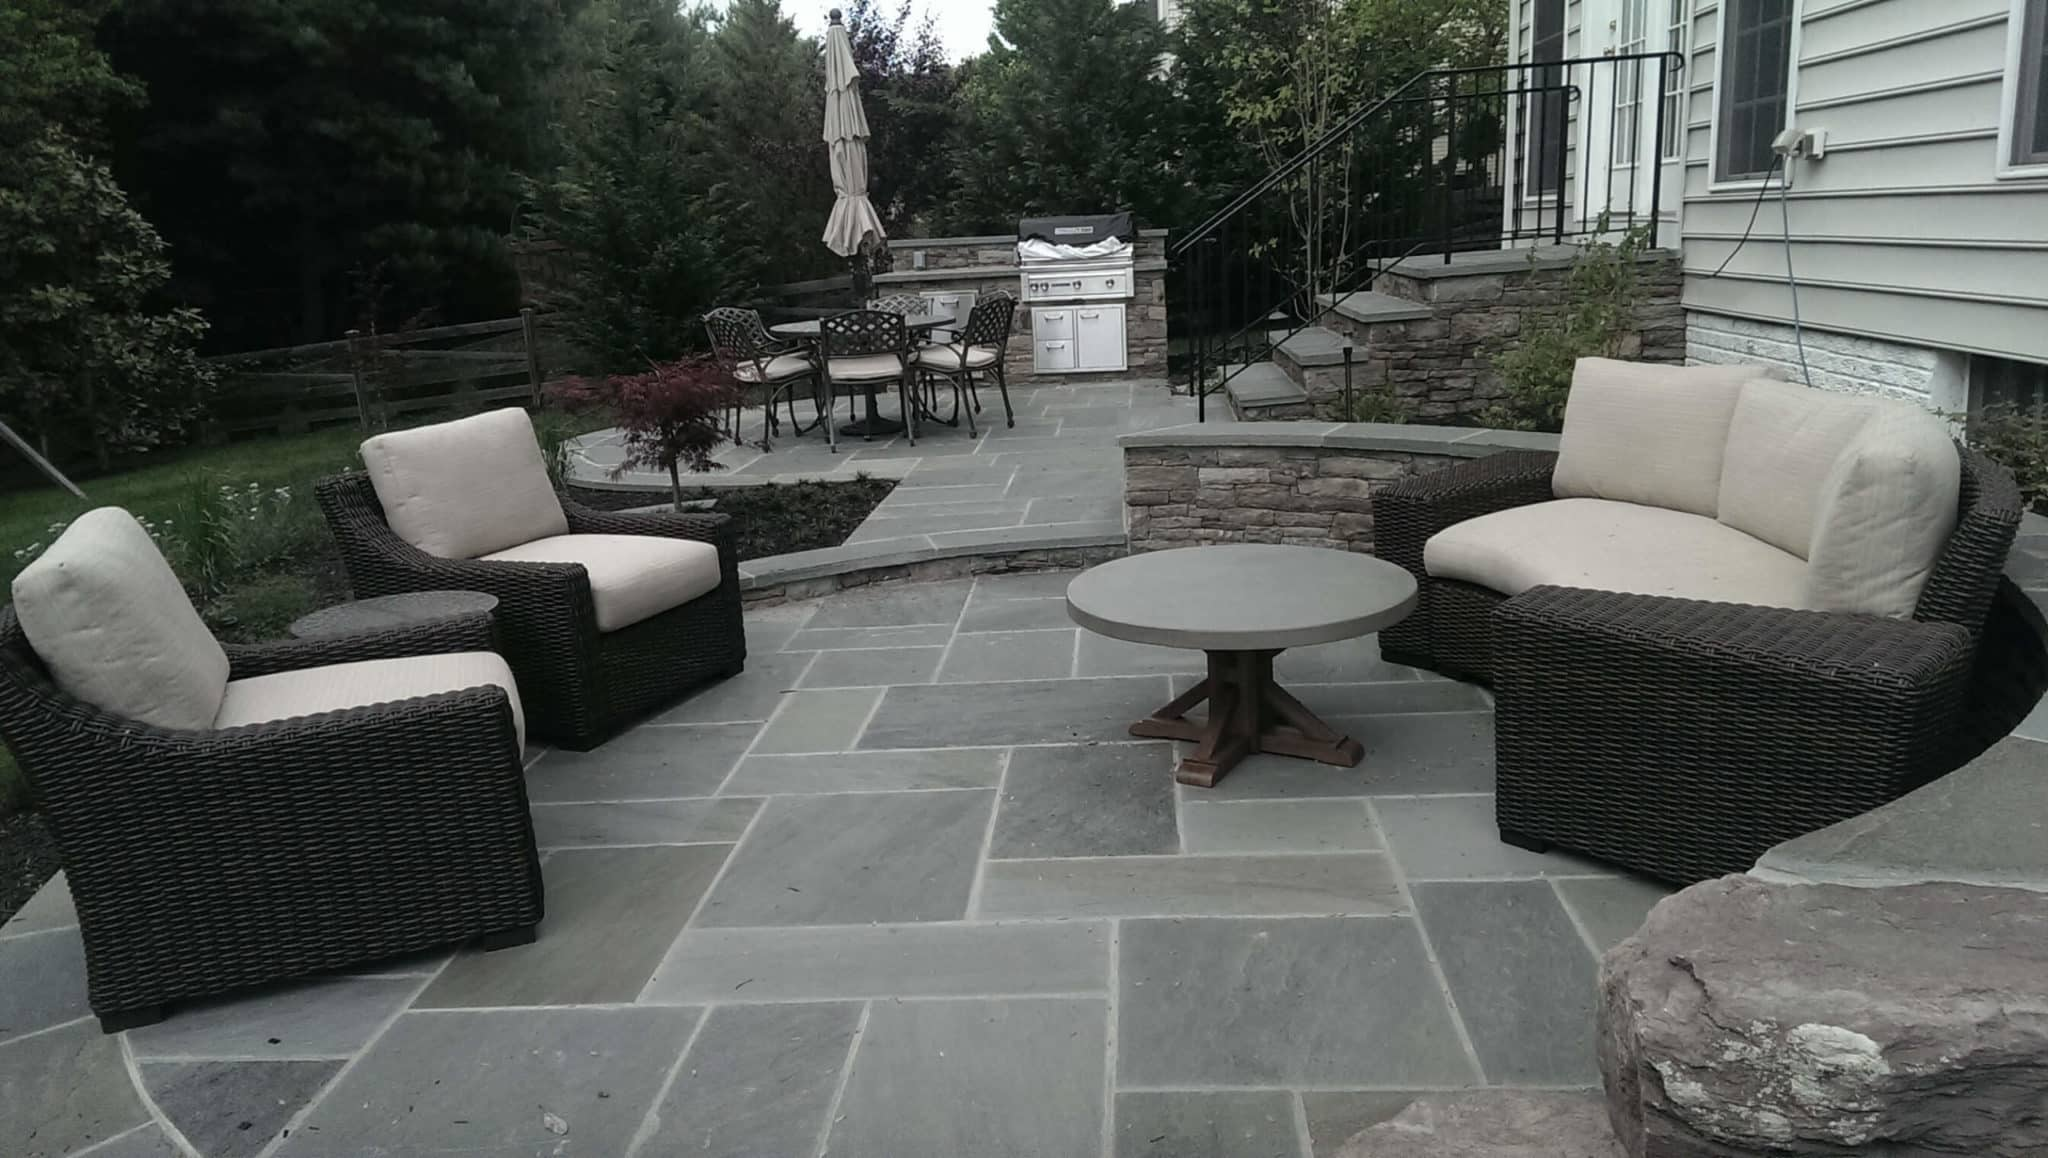 331 Flagstone Patios with PA Beige Stone Wall and Stairs with Flagstone Treads